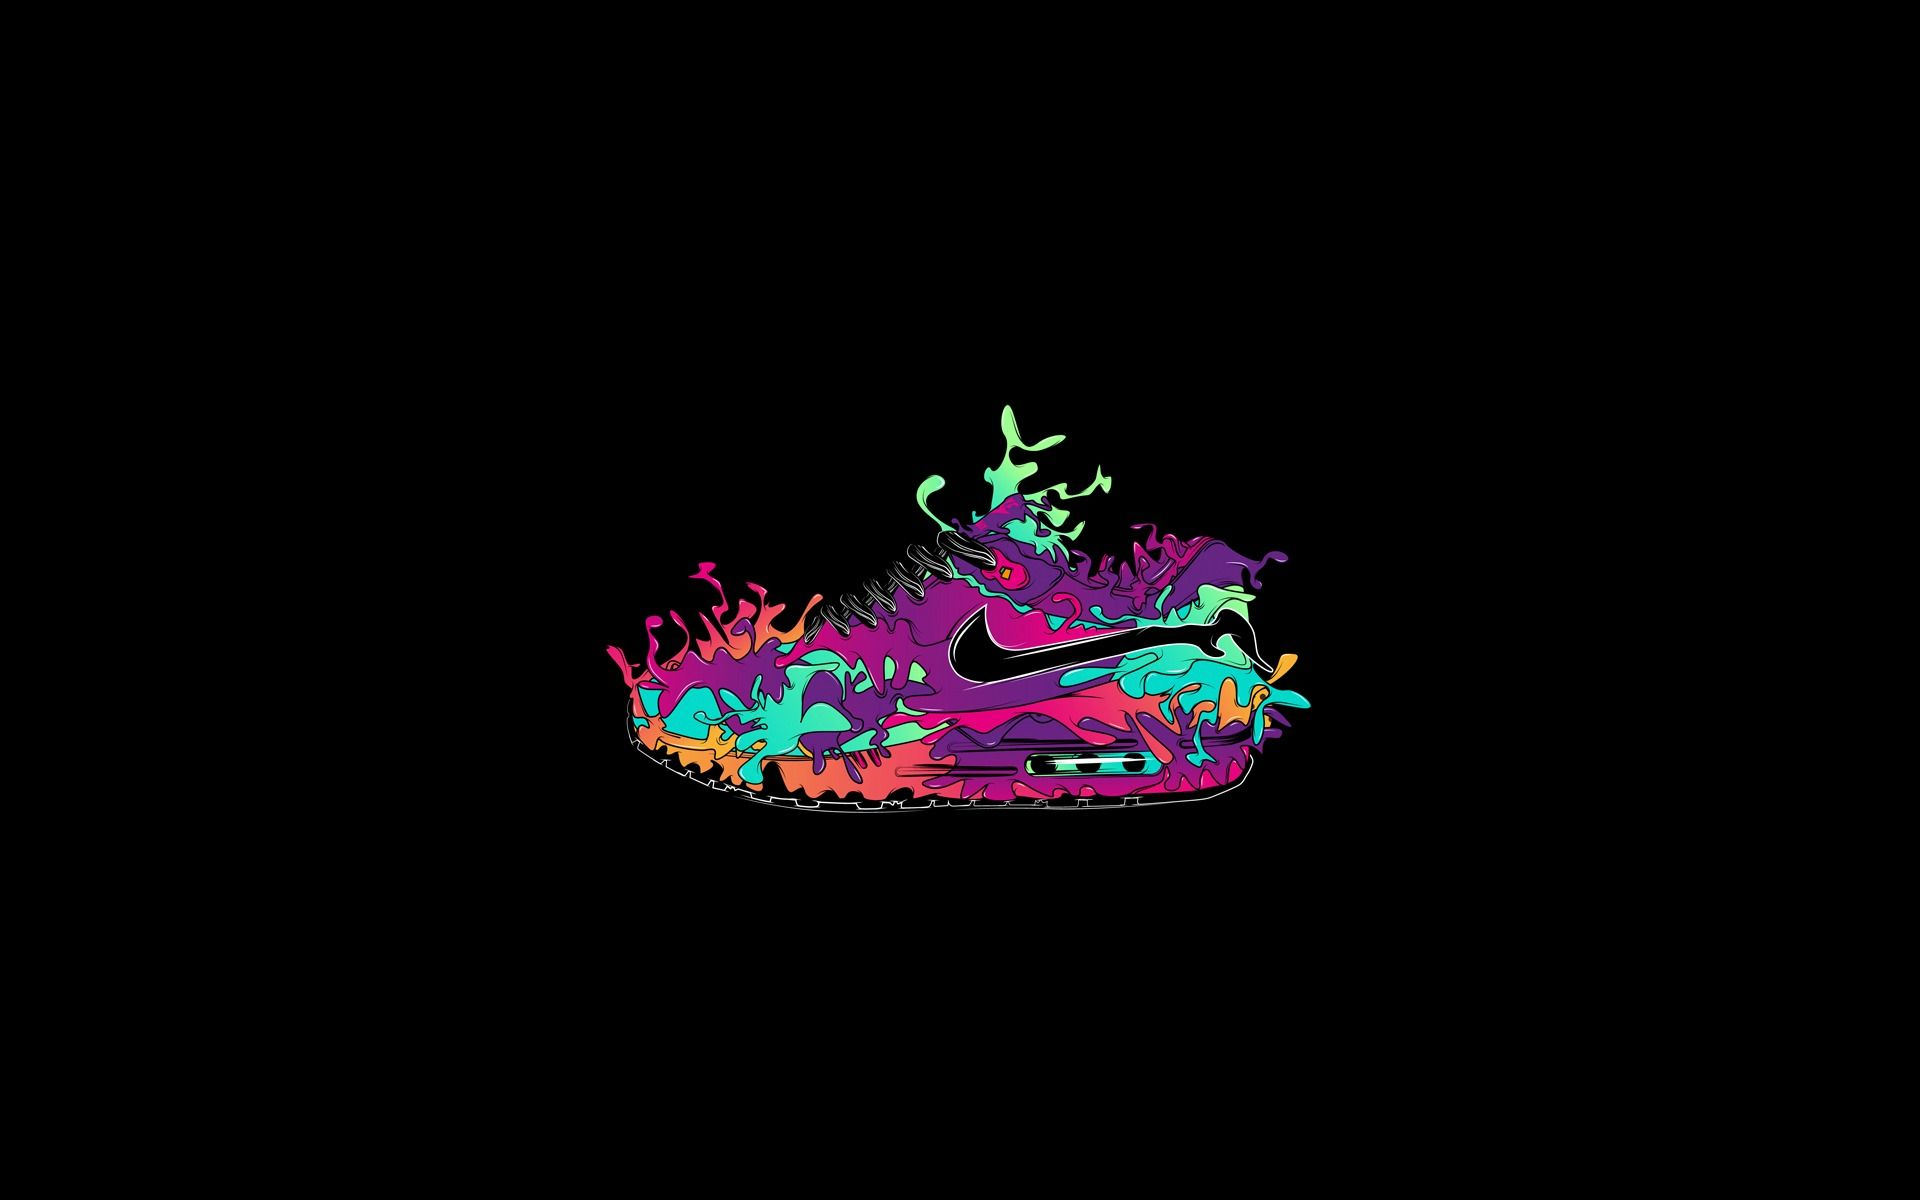 ideas about Nike Wallpaper on Pinterest Nike logo 500215750